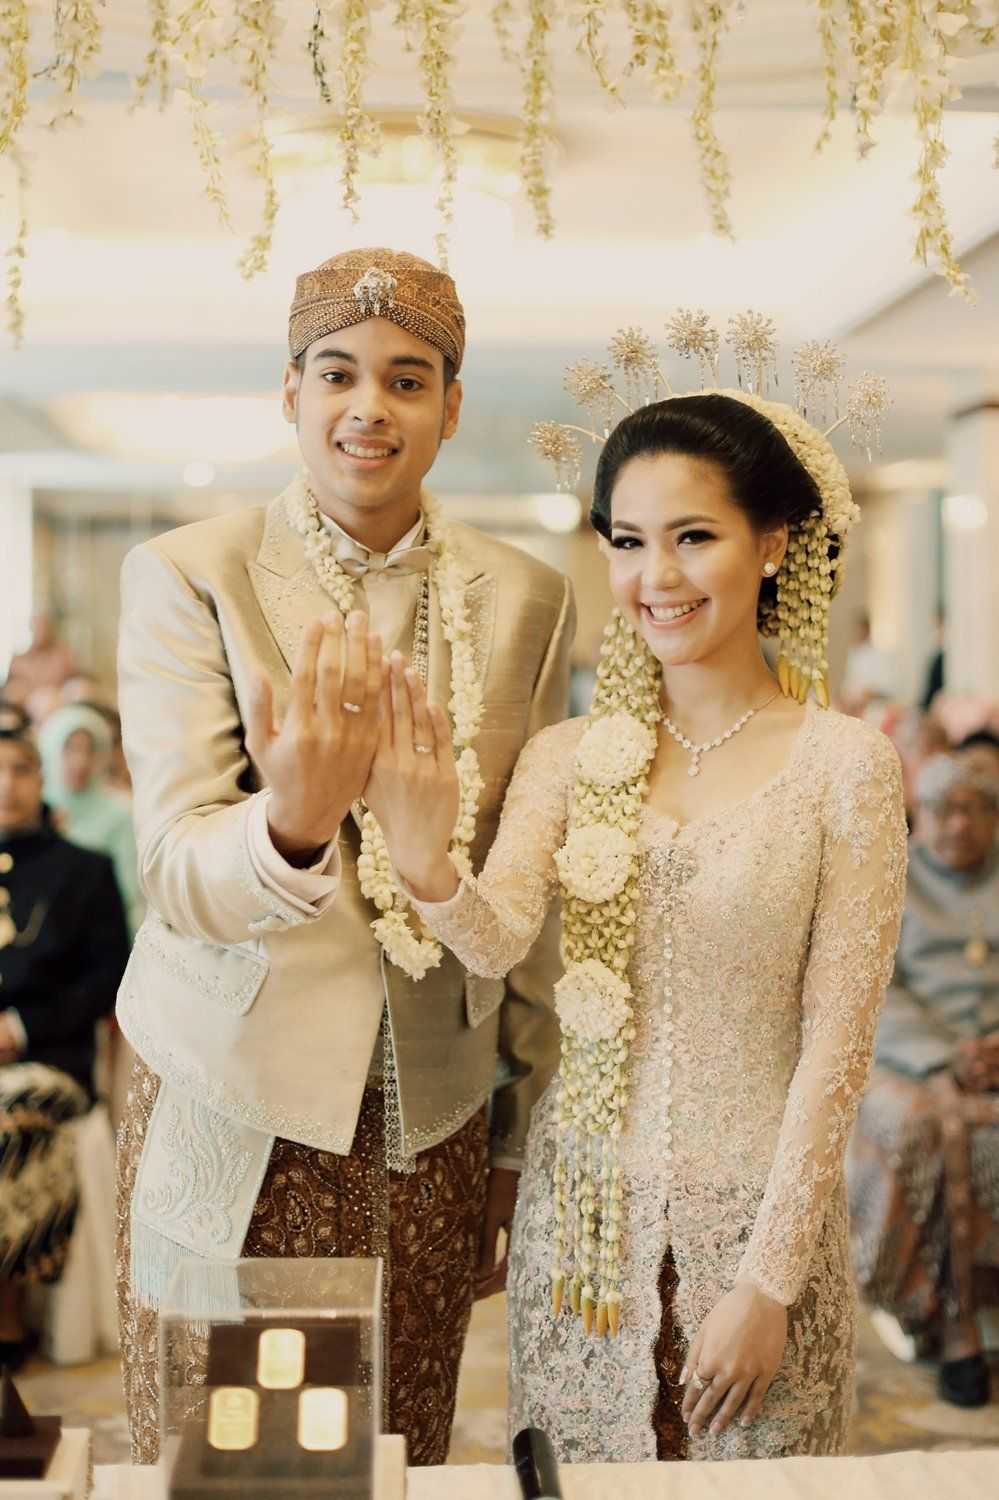 Pernikahan Tema Pastel Peranakan The Wedding The Bride